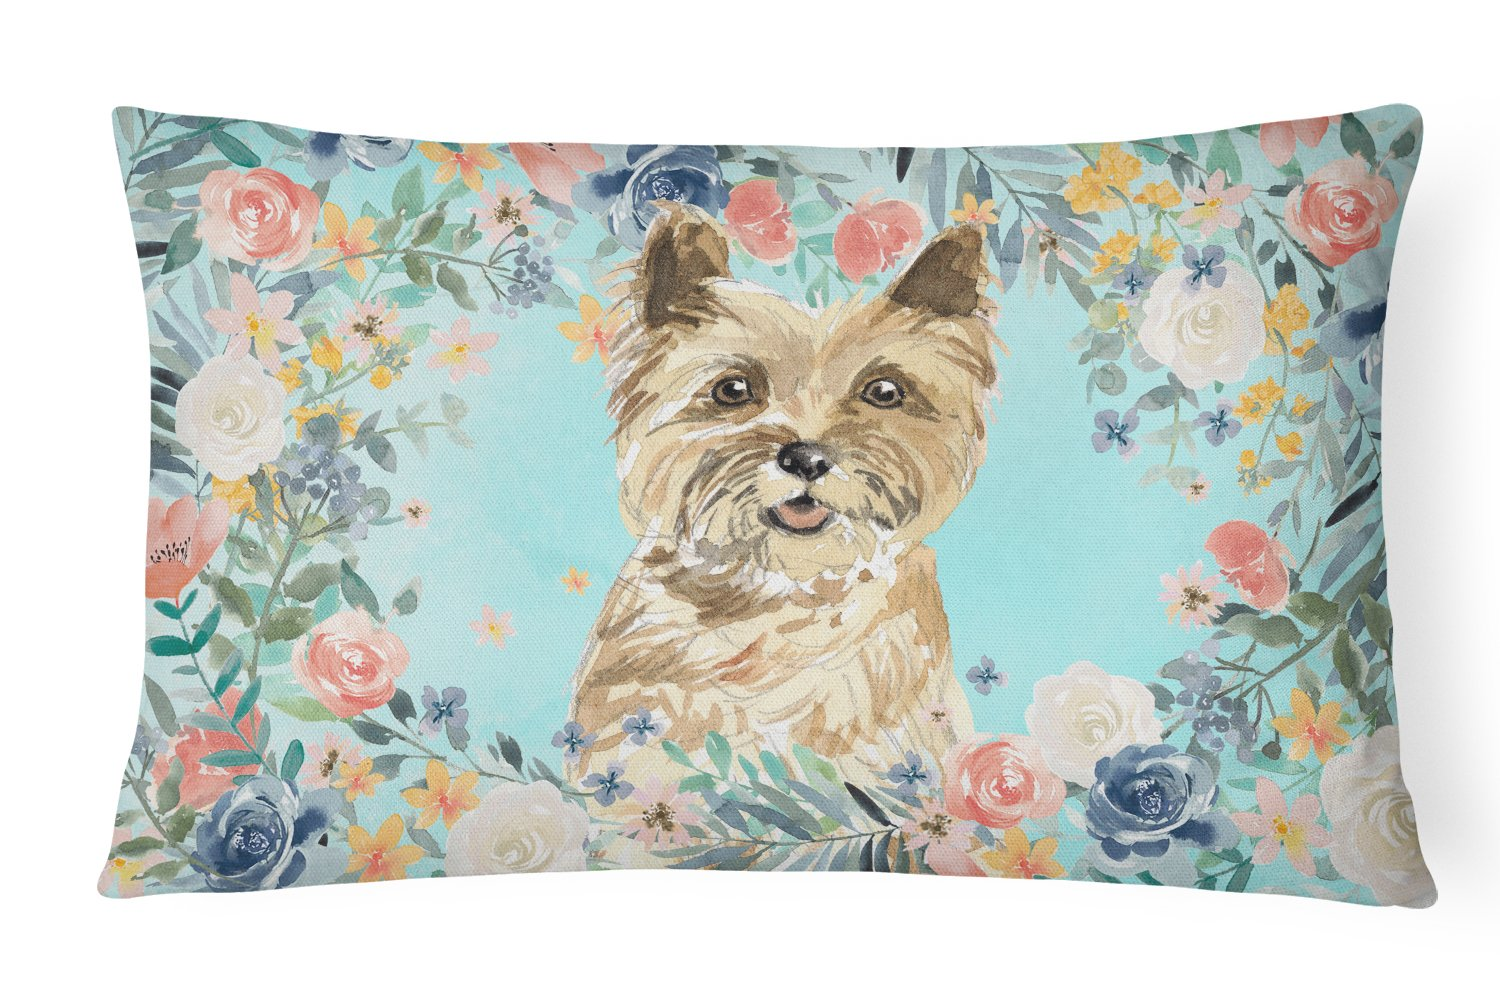 Buy this Cairn Terrier Canvas Fabric Decorative Pillow CK3430PW1216